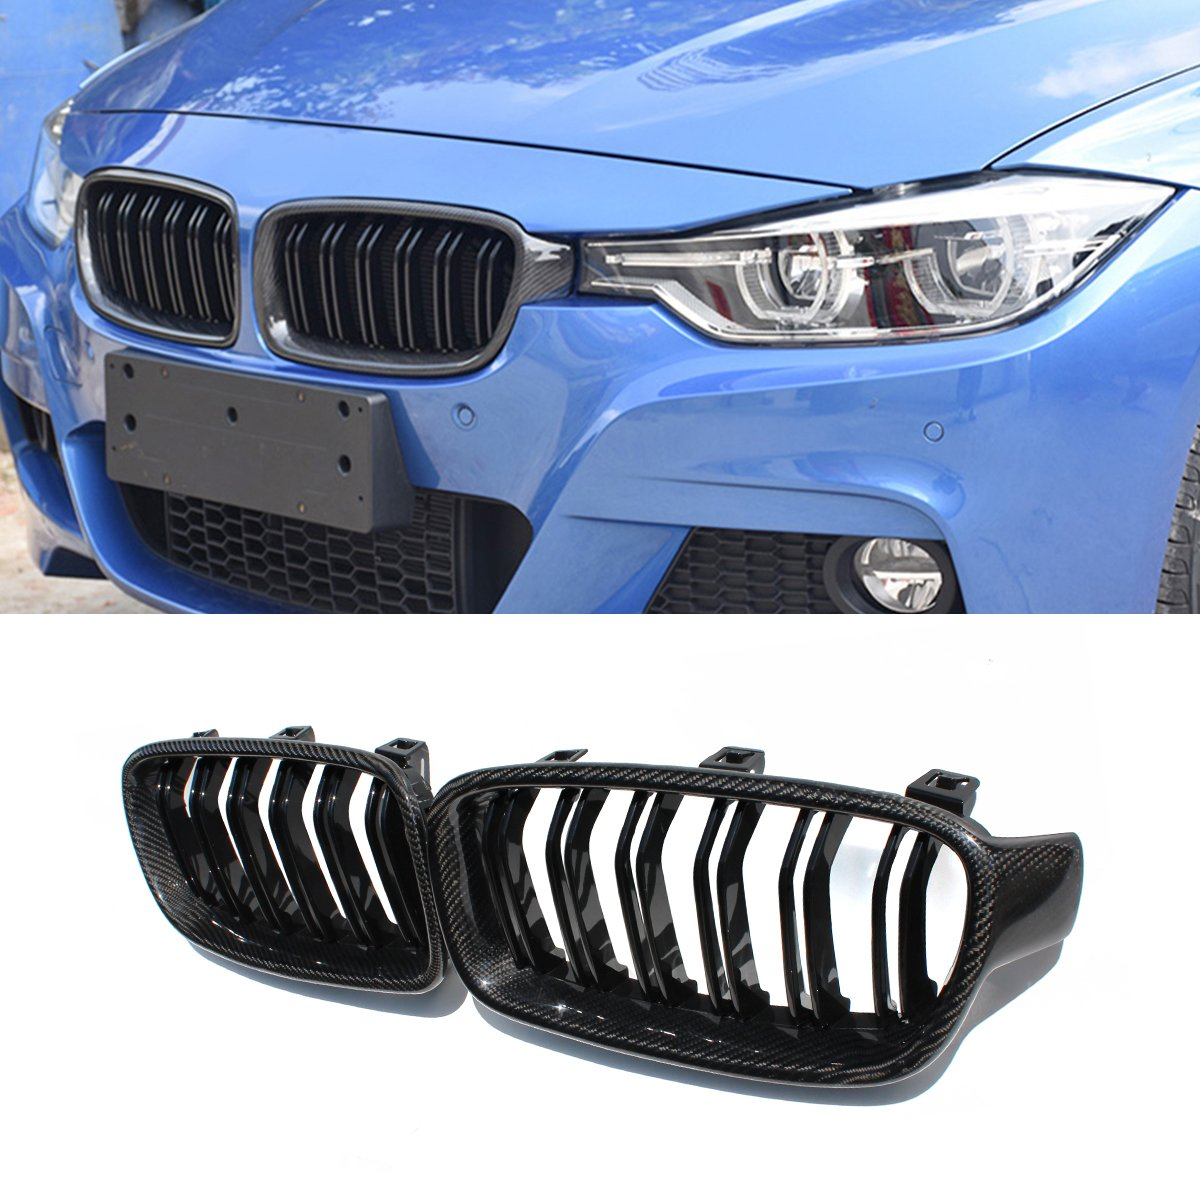 F30 Grille,Carbon Fiber Front Replacement Kidney Grill for 3 Series F30 F31 Gloss Black